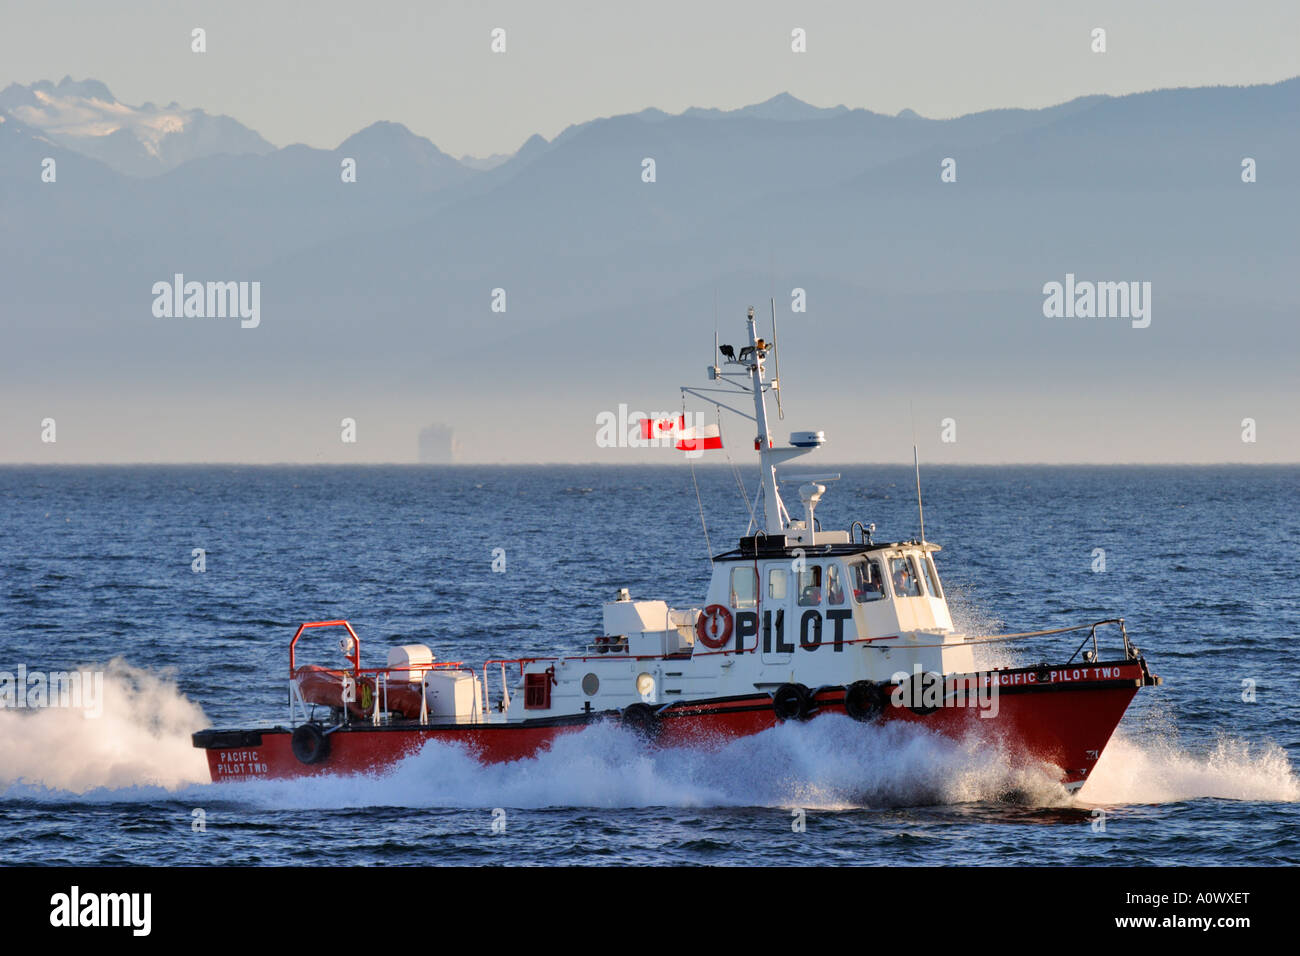 Port of Victoria harbourmaster pilot boat in Juan de Fuca Strait with Olympic mountains in background. - Stock Image